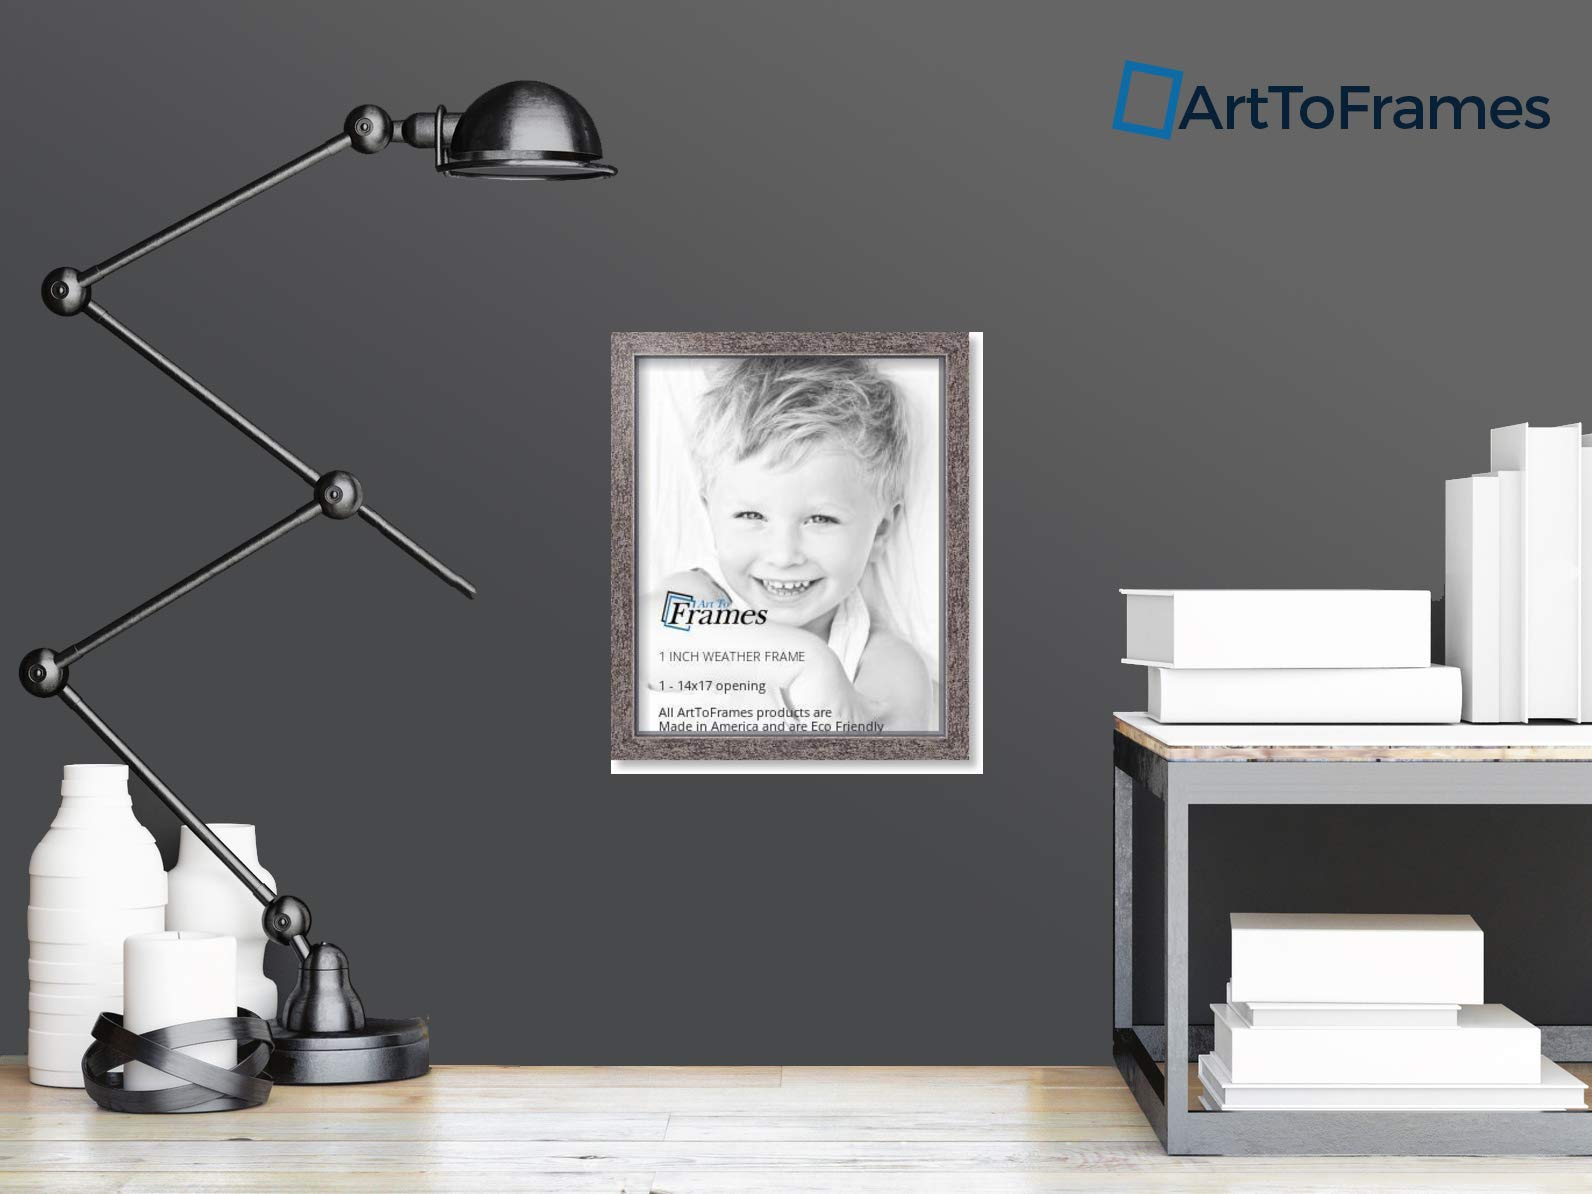 ArtToFrames 14x17 inch Gray Rustic Barnwood Wood Picture Frame, 2WOM0066-77900-YGRY-14x17, 14 x 17'', by ArtToFrames (Image #4)